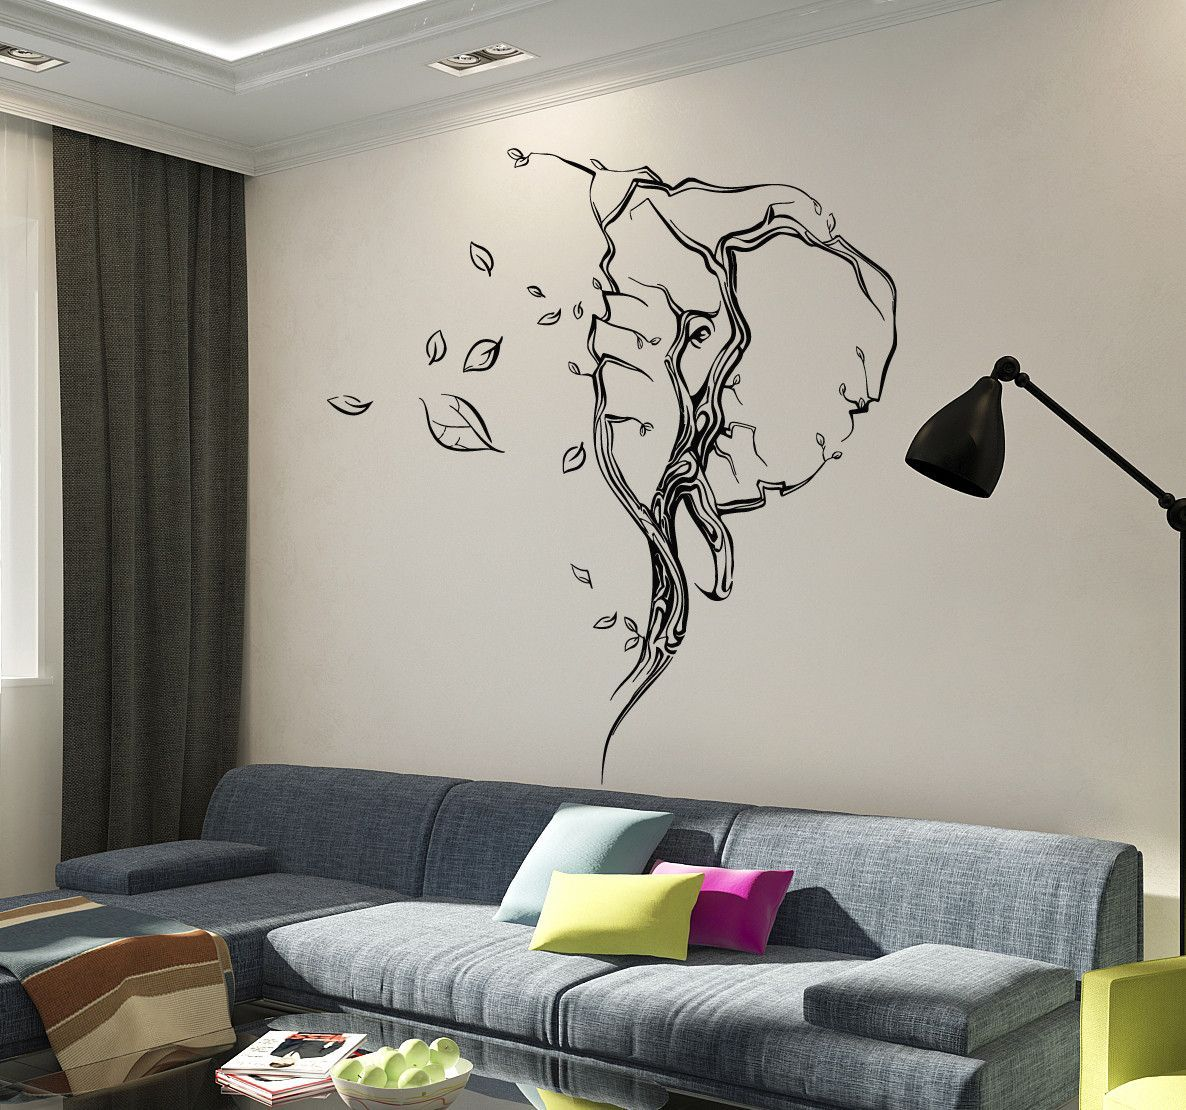 vinyl wall decal abstract elephant head leaves animal stickers vinyl wall decal abstract elephant head leaves animal stickers ig4100